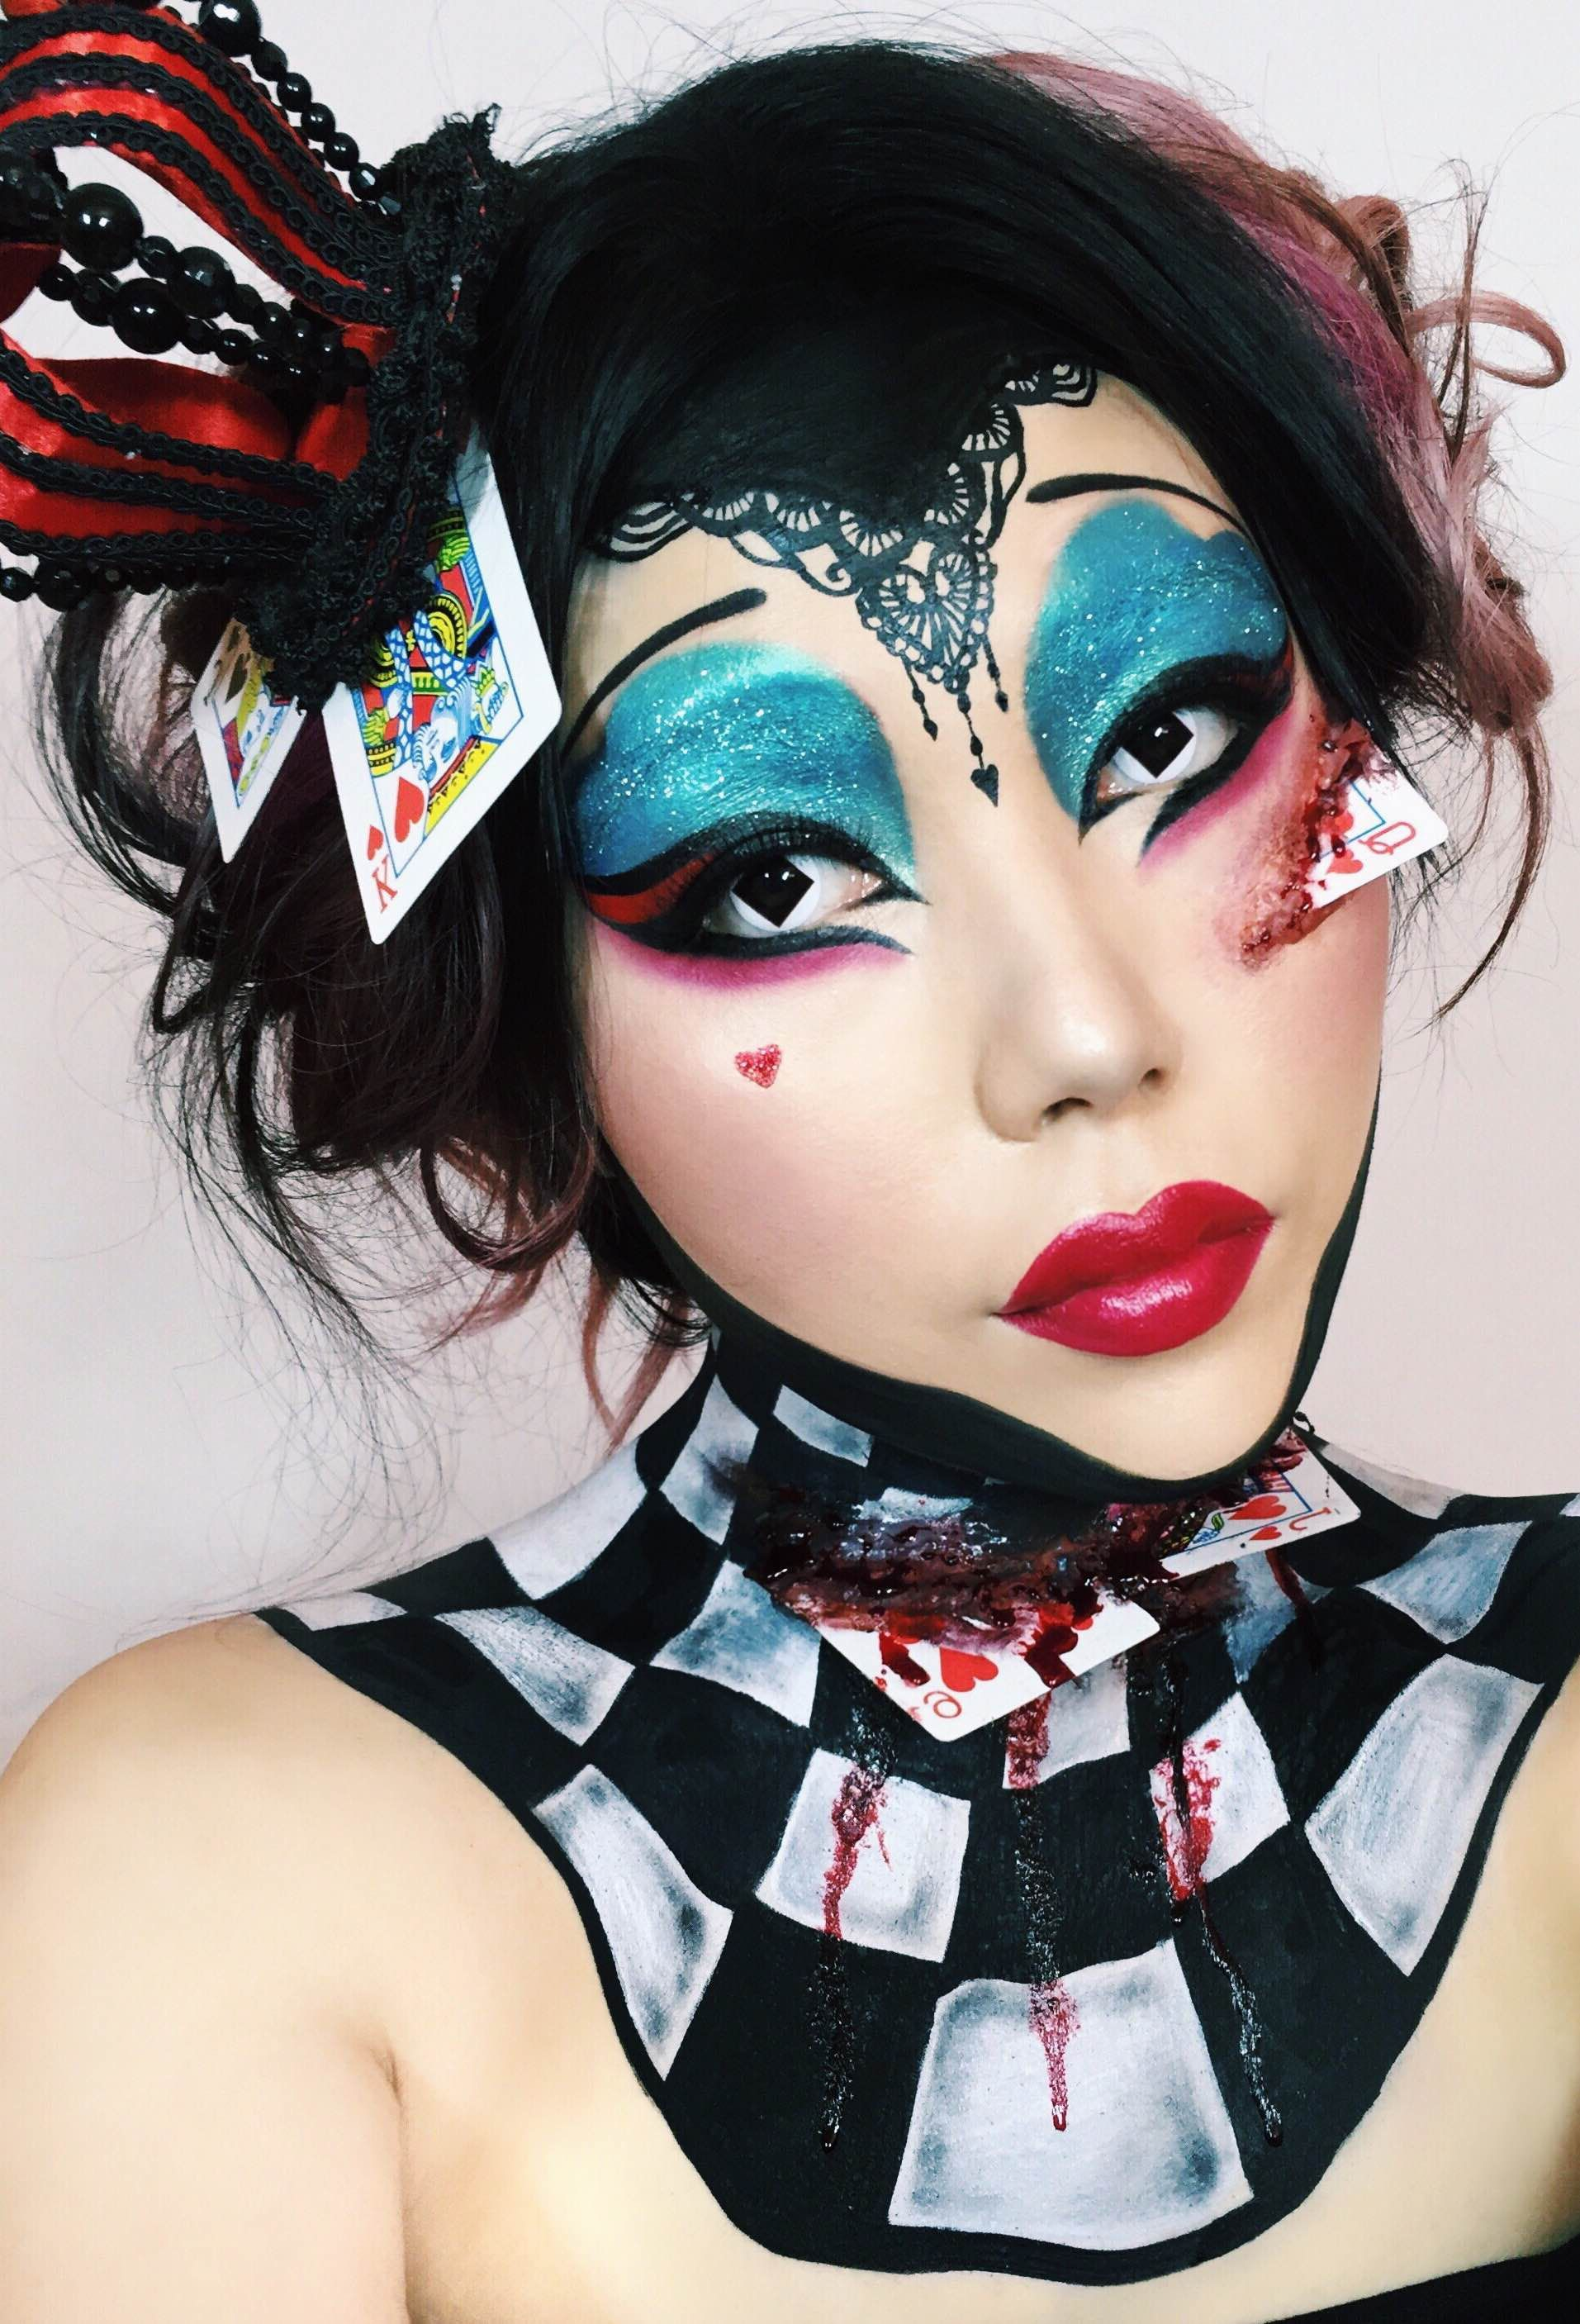 the queen of hearts from alice in wonderland. halloween makeup